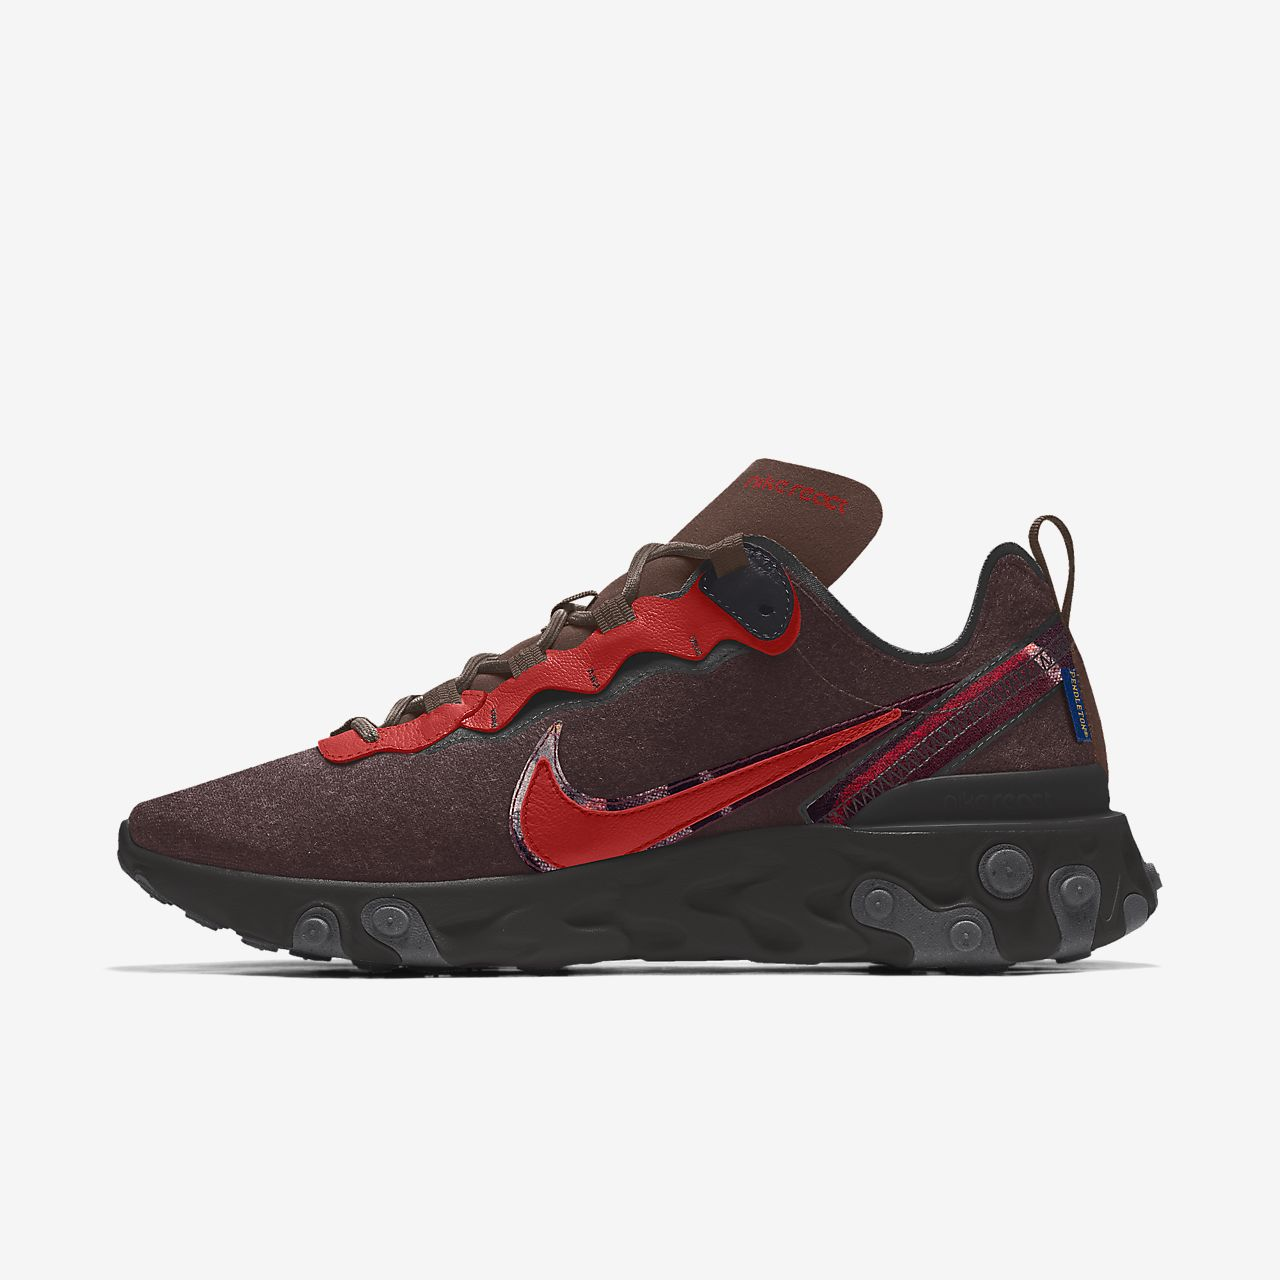 Specialdesignad sko Nike React Element 55 Pendleton By You för män